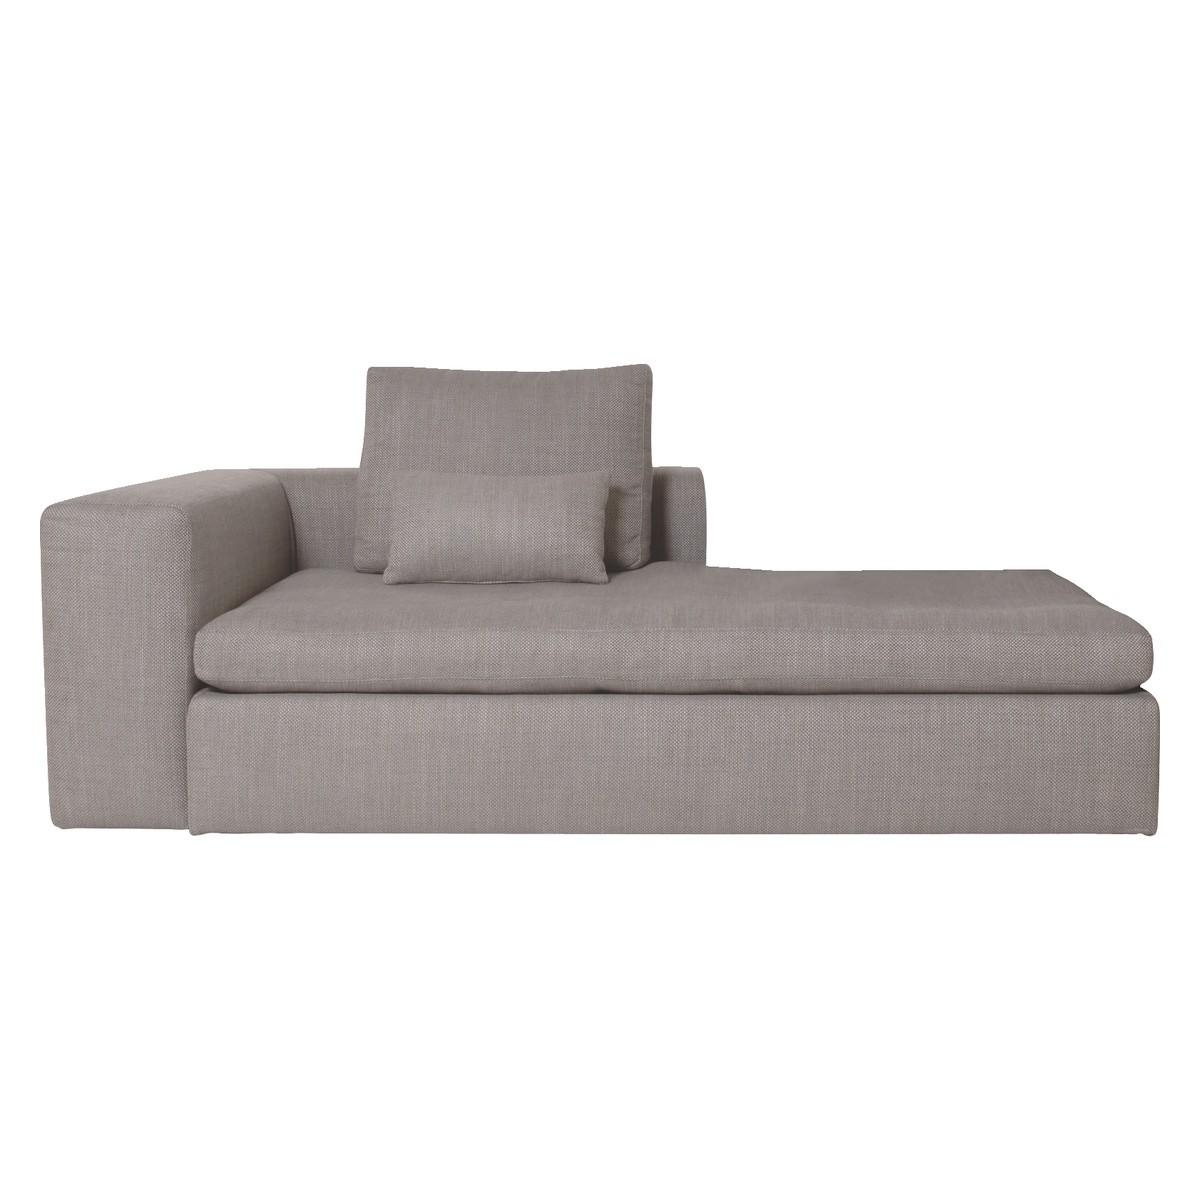 durdham fabric chaise longue sofa bed furniture living room set 20 best ideas beds